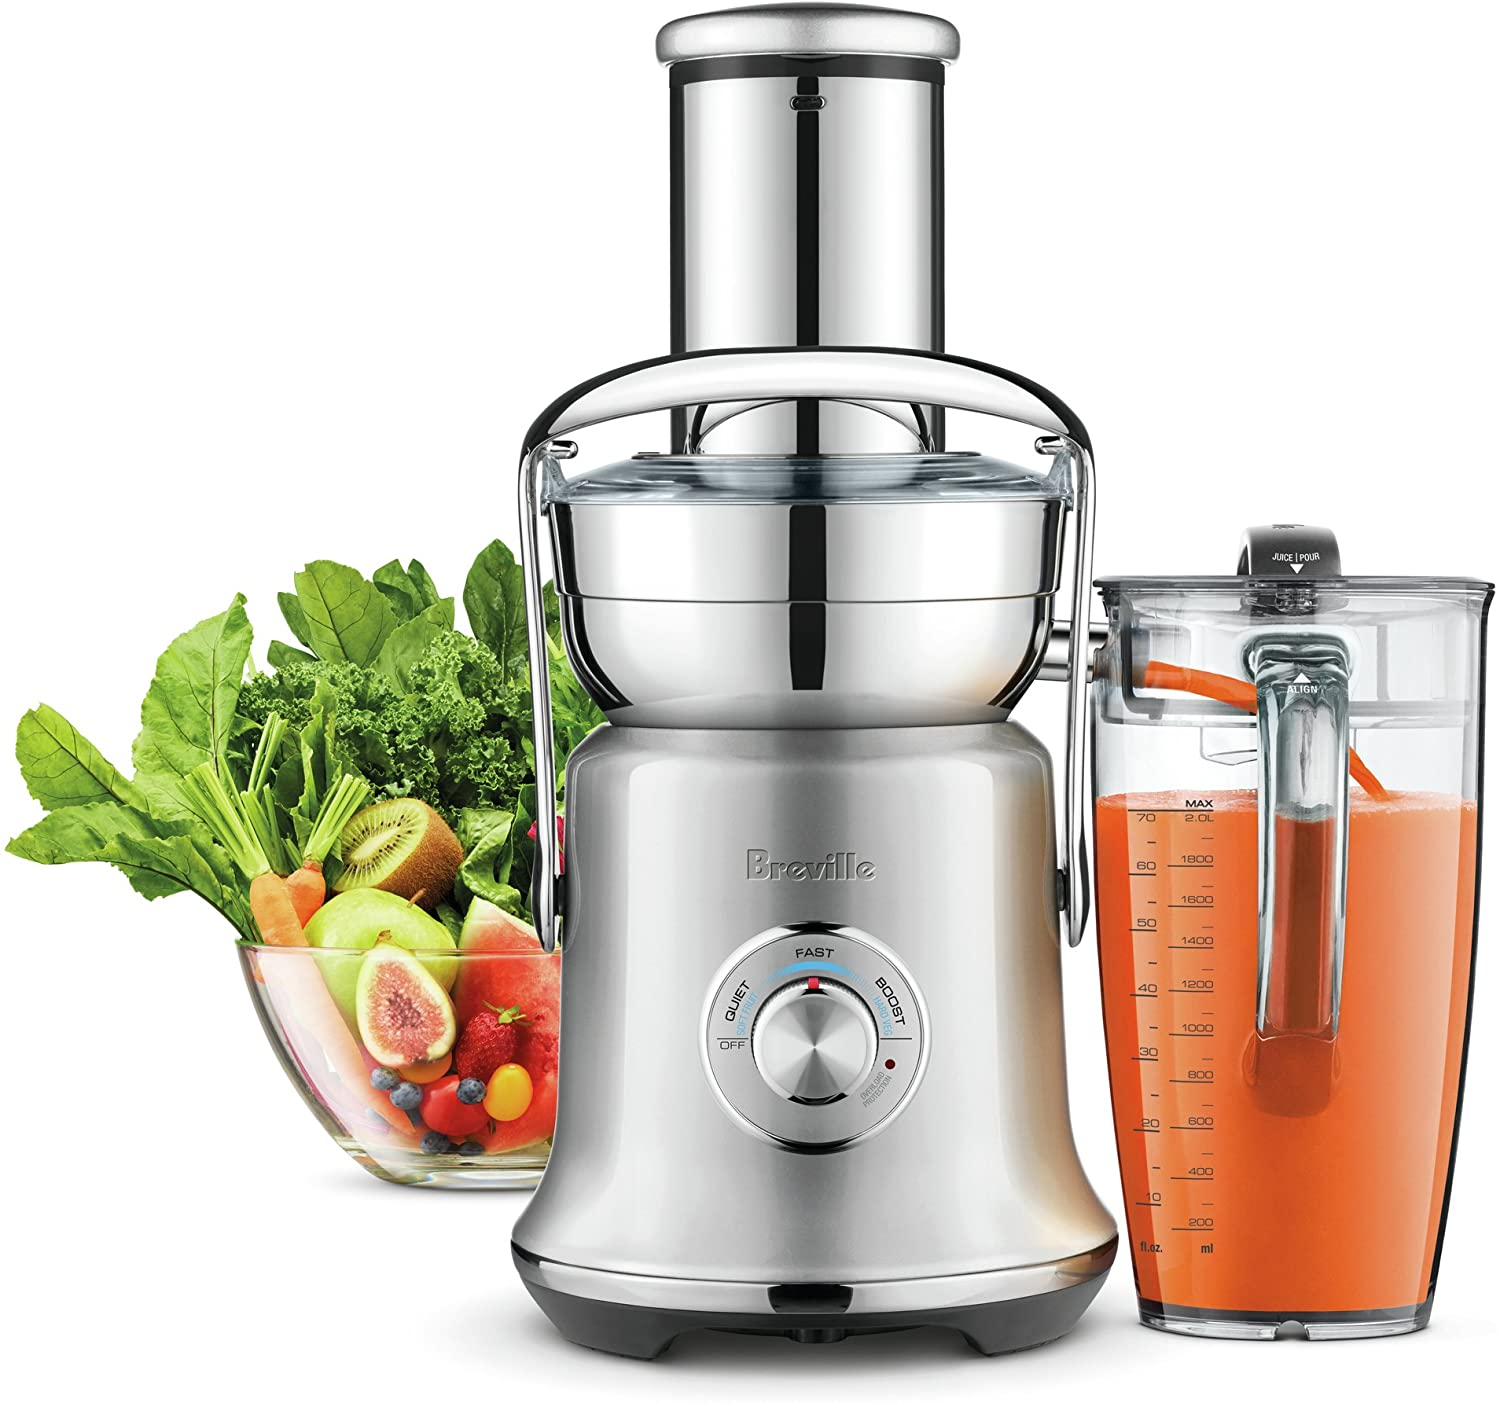 Best Juicer for Carrots 2021 - Reviews & Buying Guide 4